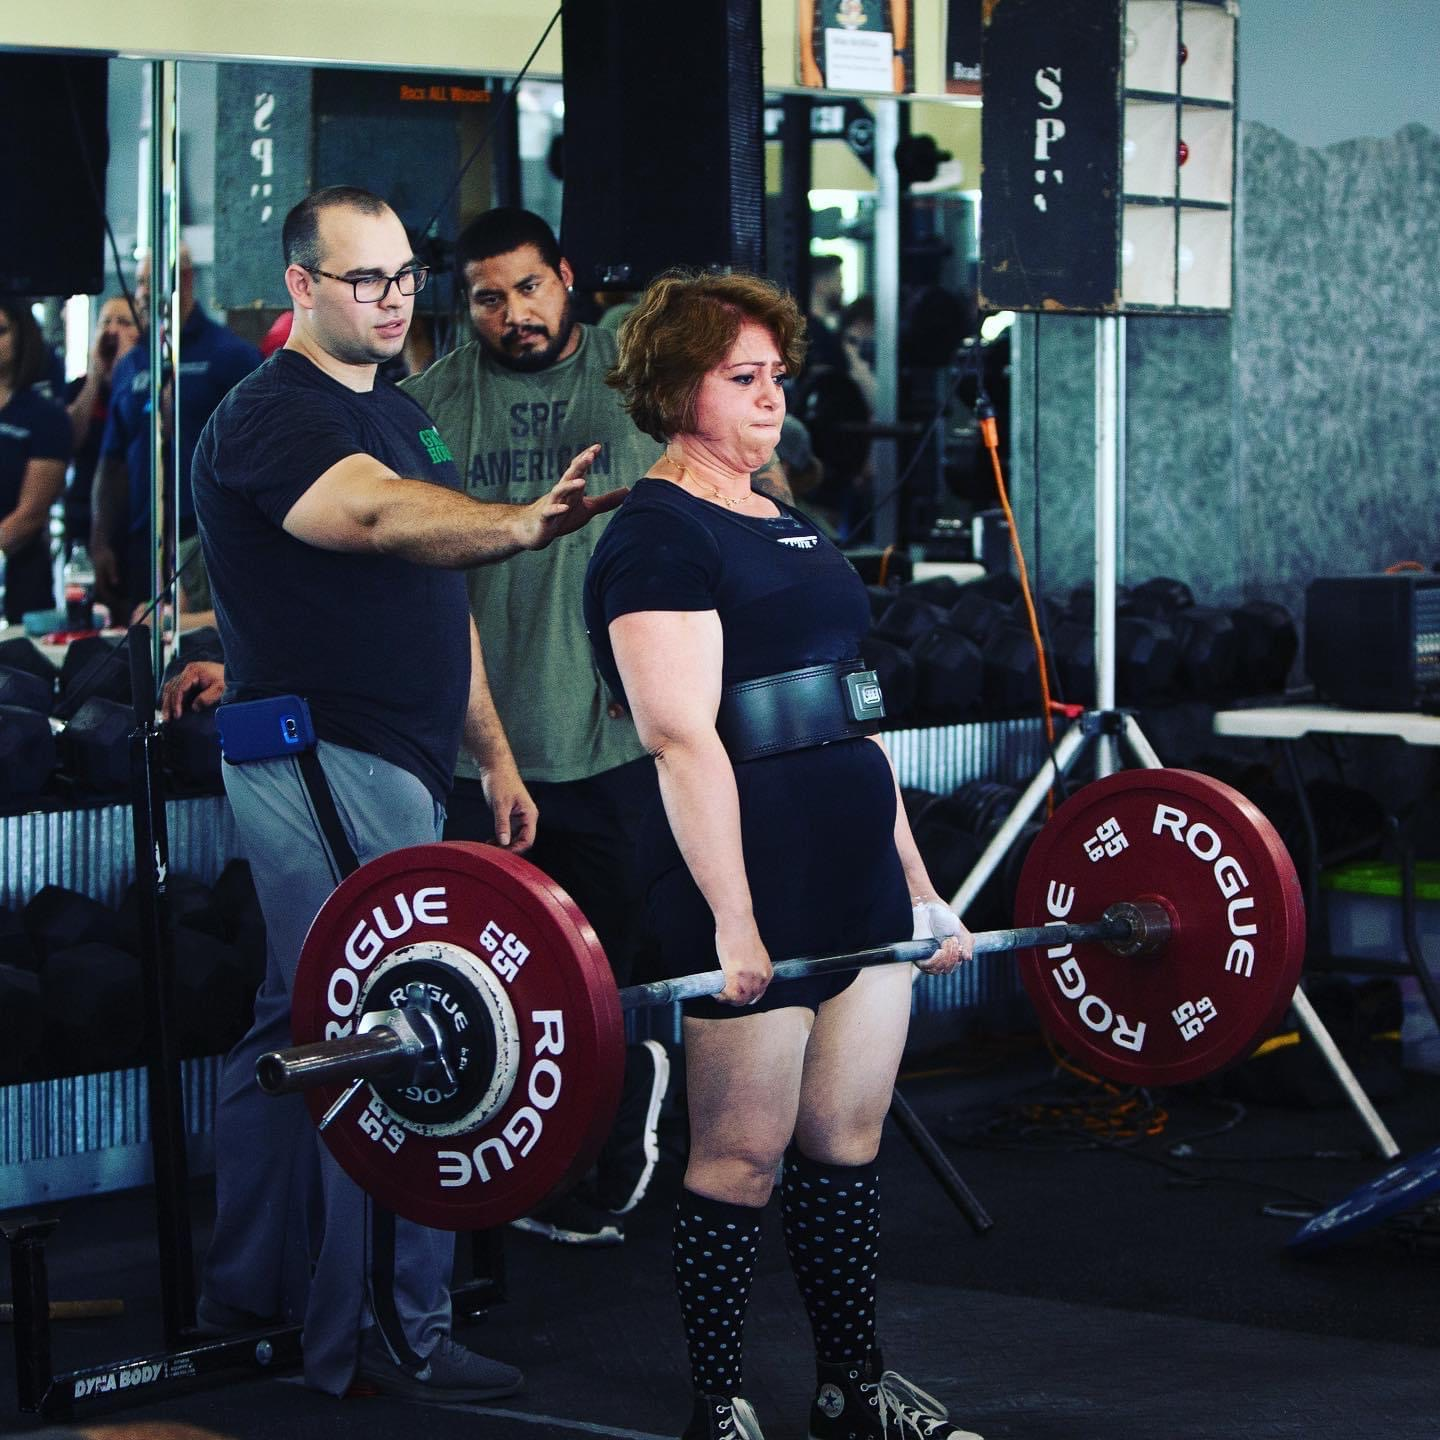 Champion powerlifter Anjuli Bhat-Mejia performs a move at a CrossFit competition while a spotter assists.